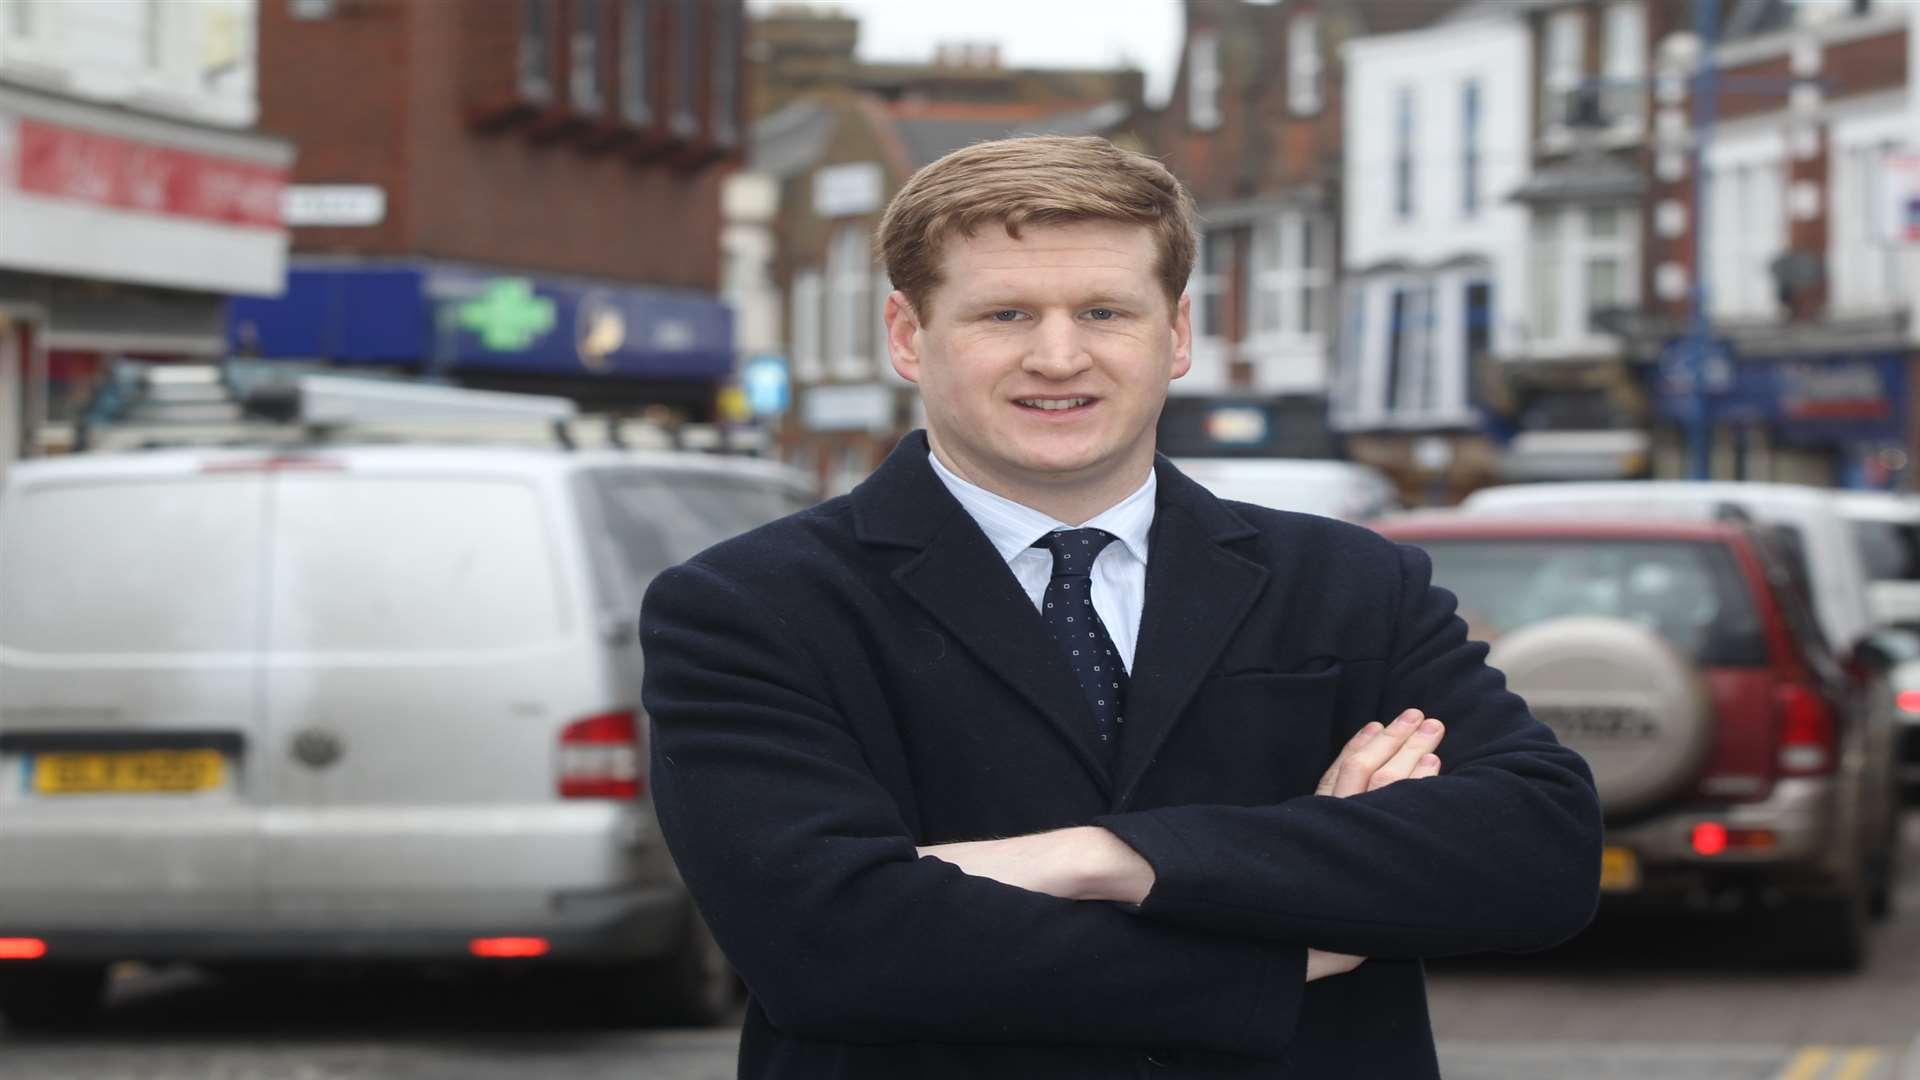 Matthew Scott, Kent's Police and Crime Commissioner